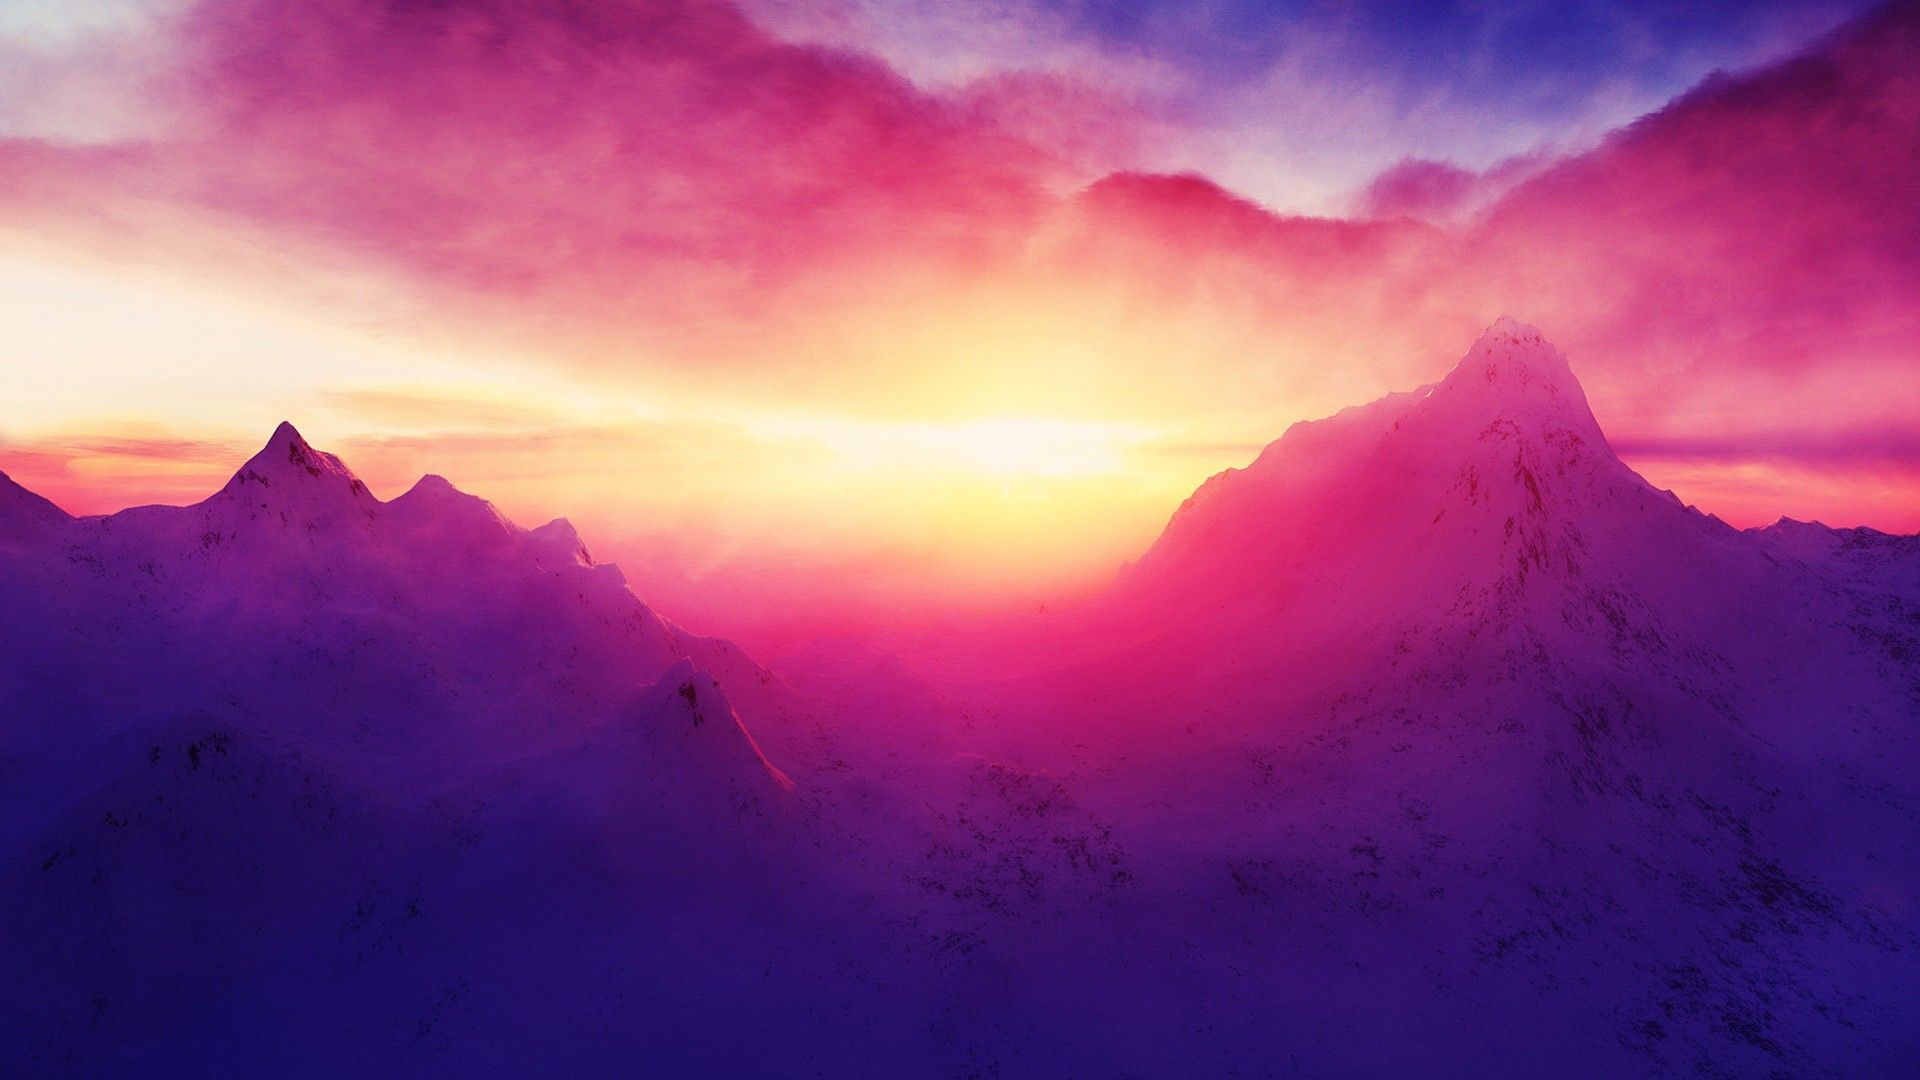 Pink Sunrise Mountains Wallpaper